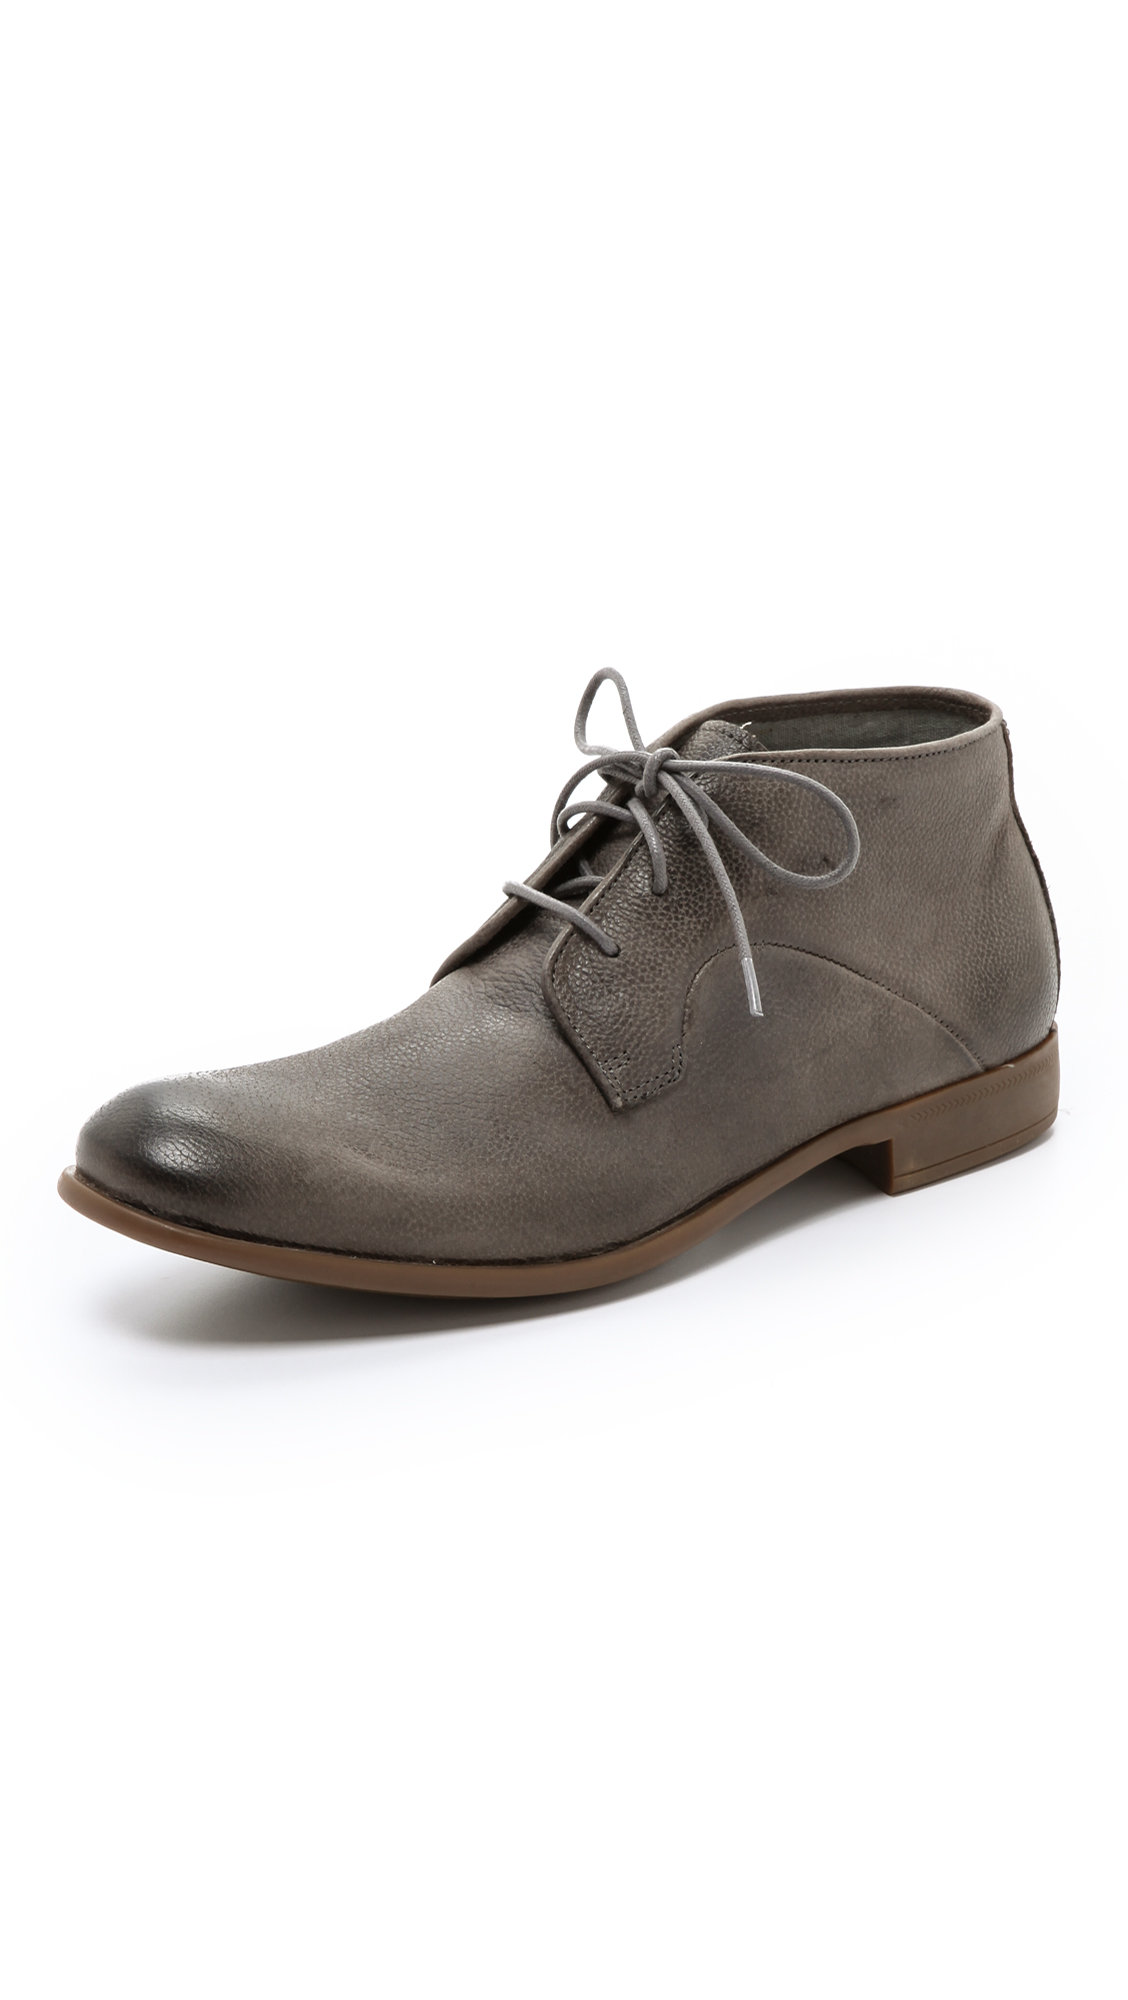 John Varvatos Review Shoes